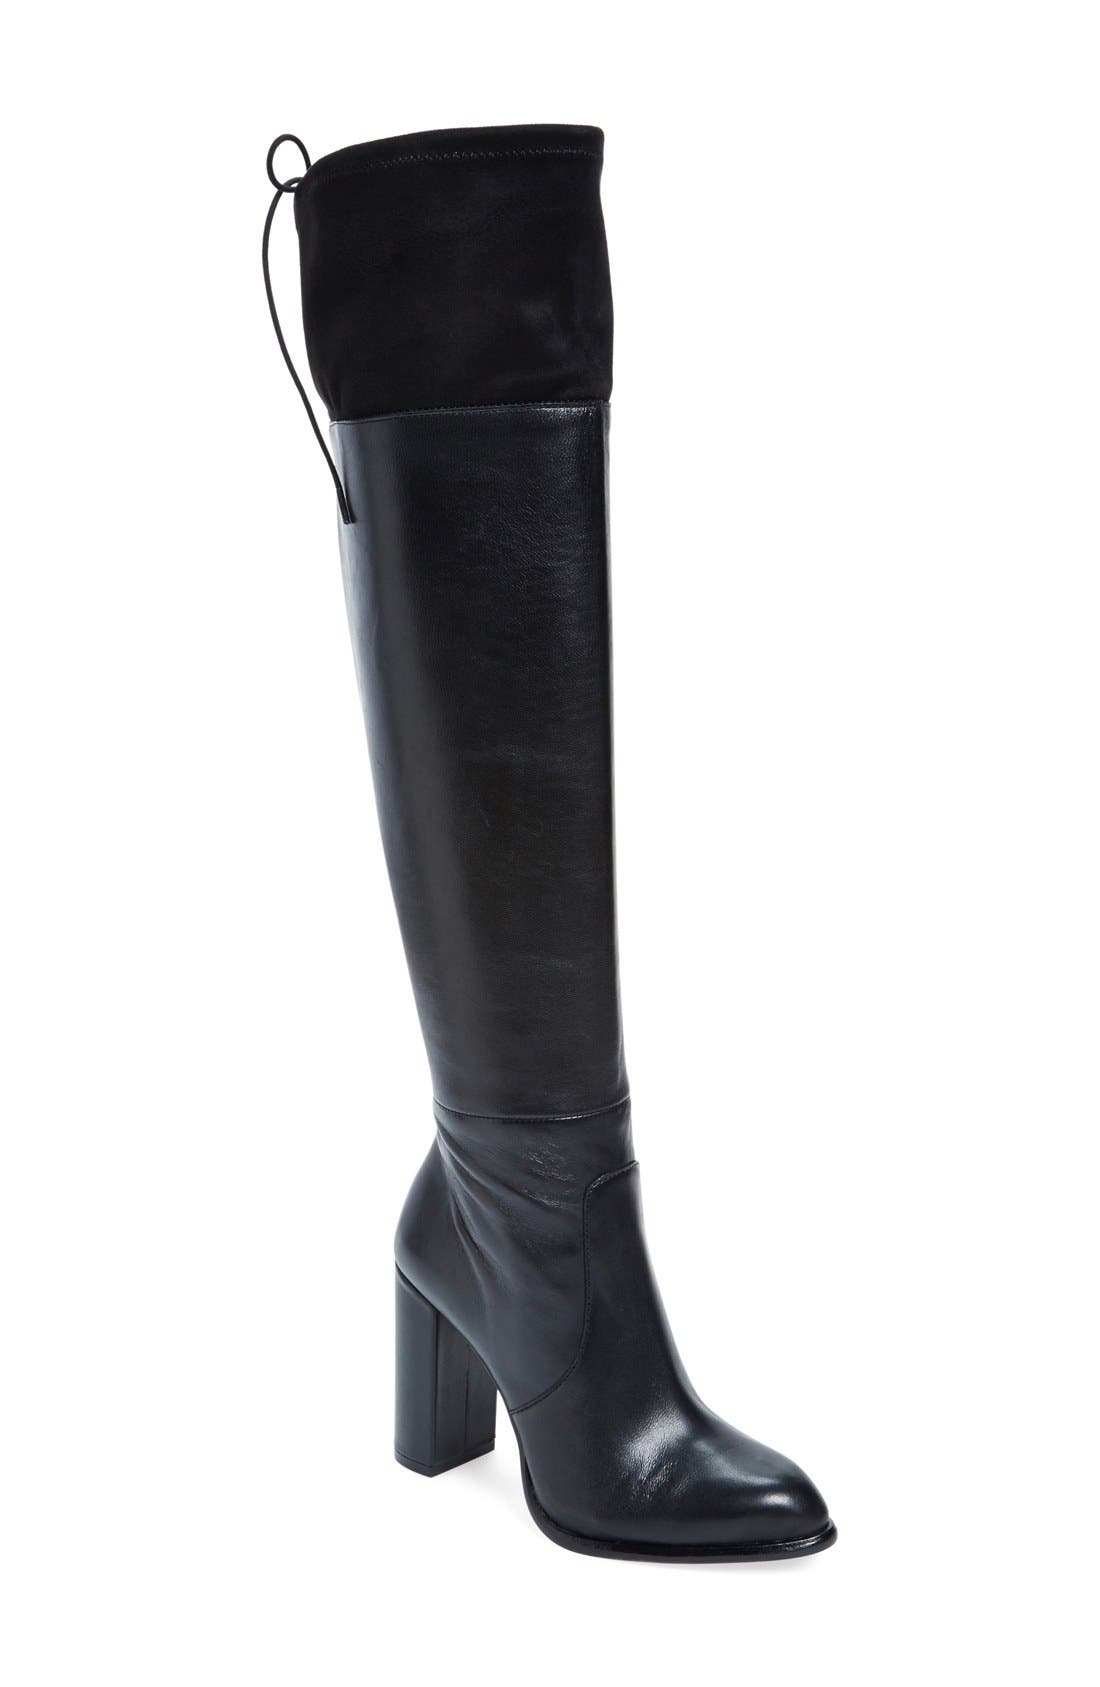 Main Image - French Connection 'Calina' Over the Knee Boot (Women)